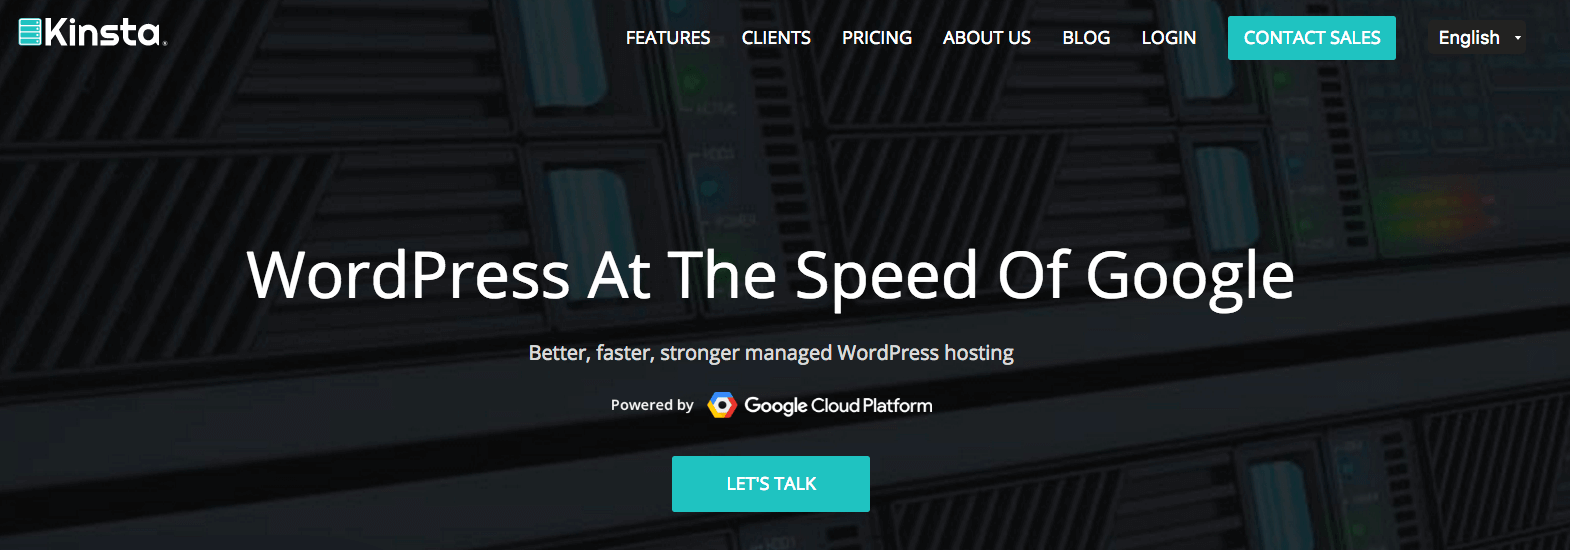 Kinsta WordPress managed hosting - BlogTipsTricks